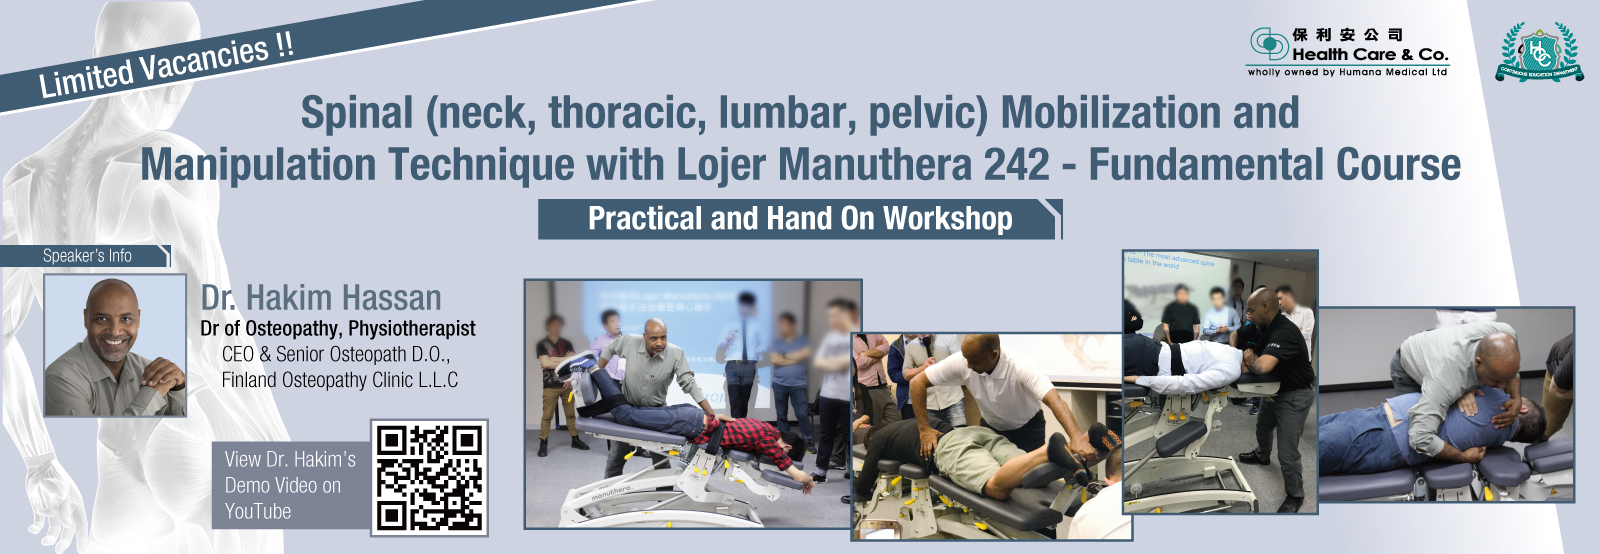 Spinal (neck, thoracic, lumbar, pelvic) Mobilization and Manipulation Technique with Lojer Manuthera 242 - Fundamental Course  Practical and Hand On Workshop